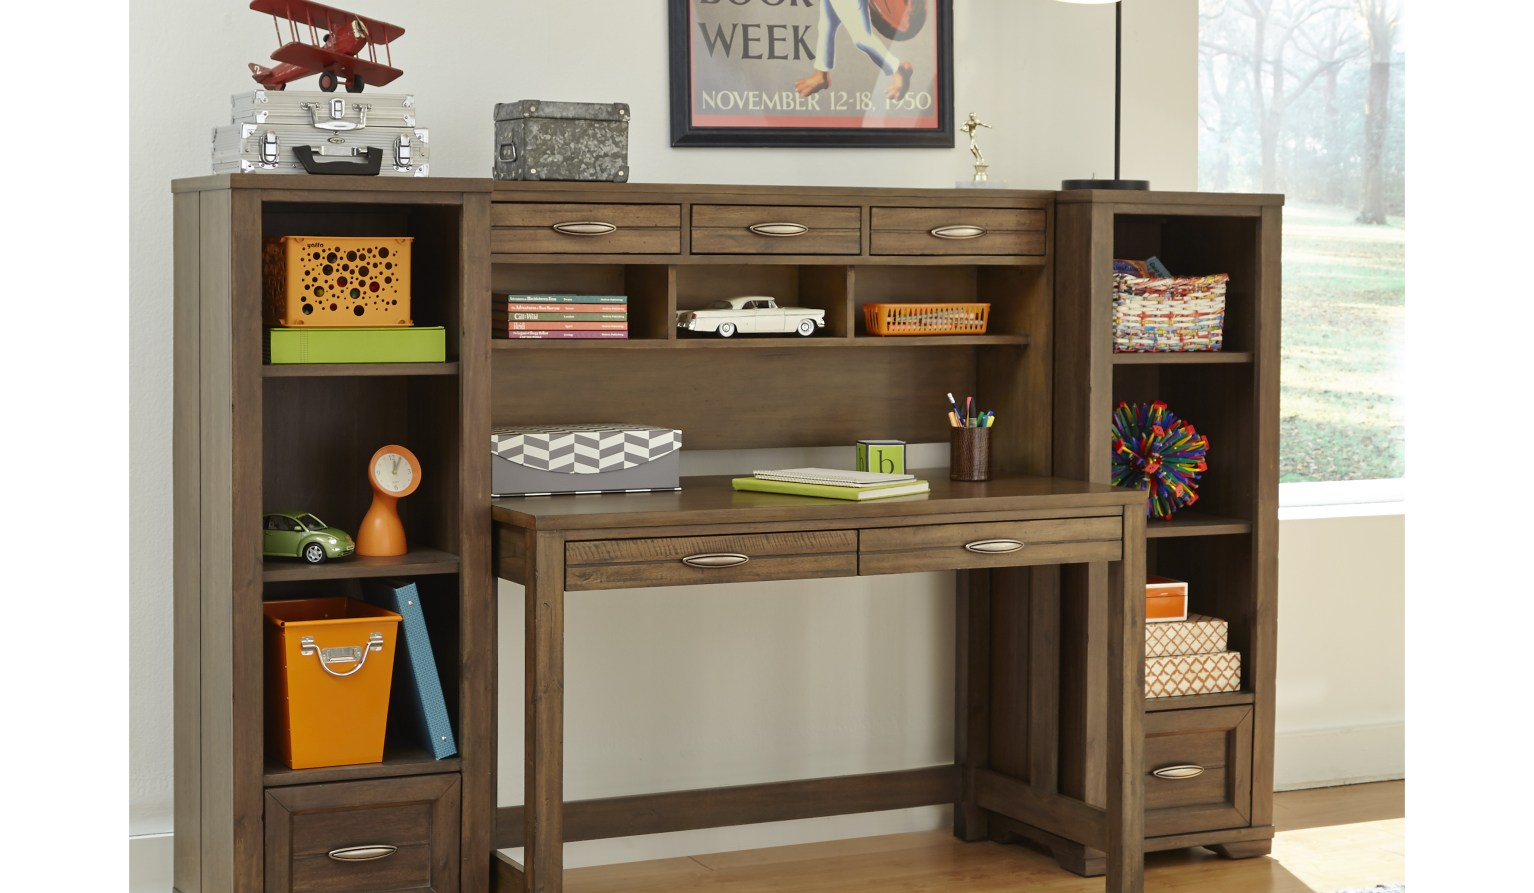 Rooms to Go University Charlotte Nc   Kidsroomstogo   Fairytale Bunk Beds